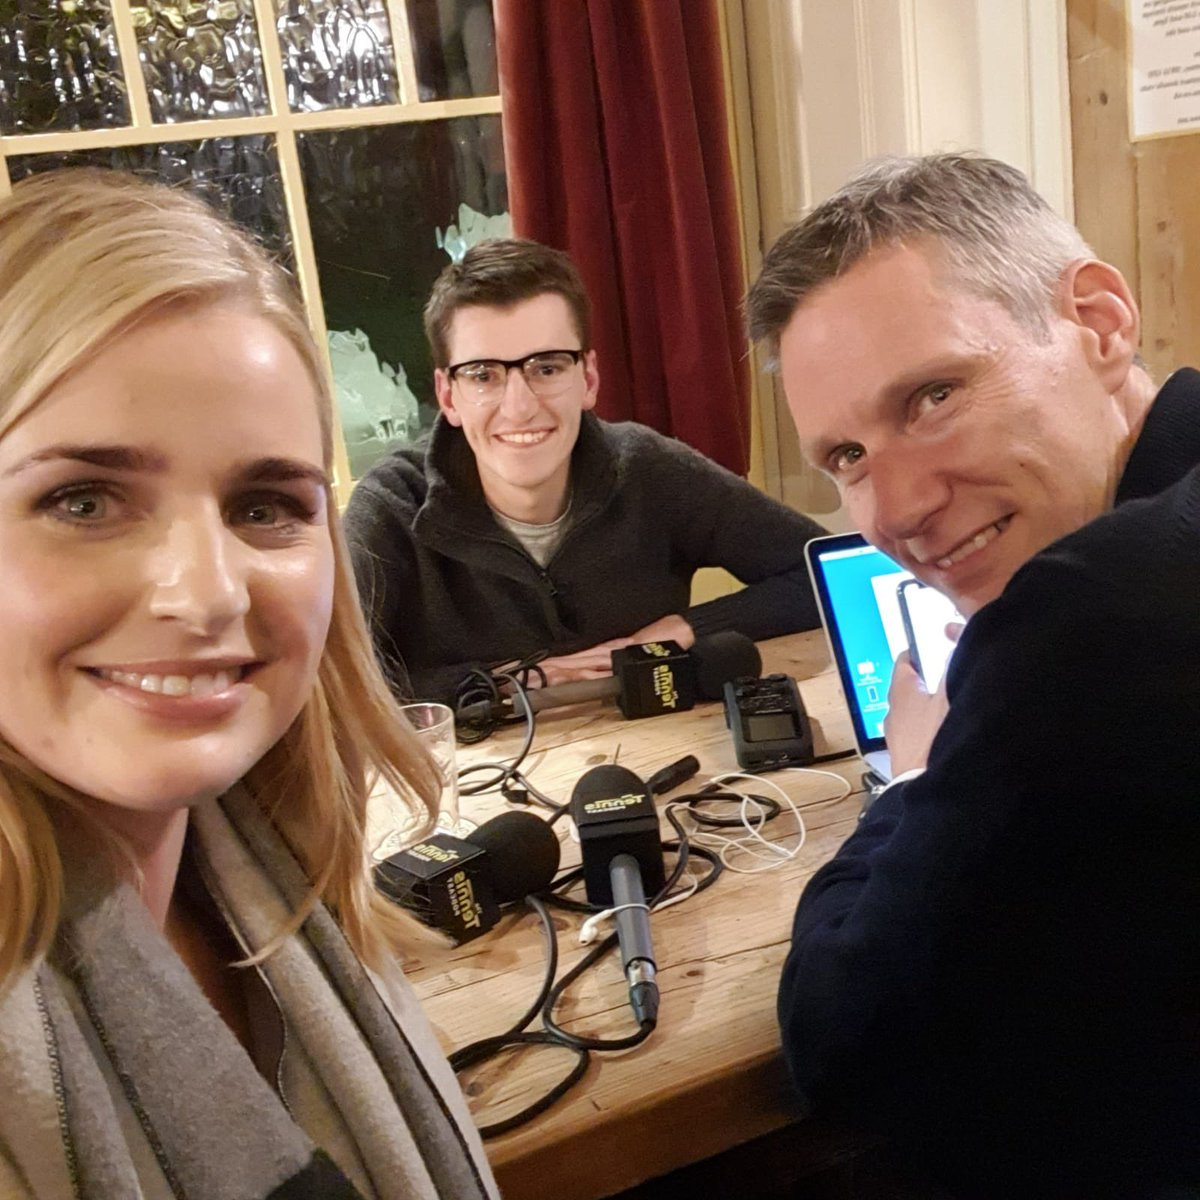 Send your questions for Catherine, David and Matt! On Monday, they will answer those chosen by guest editor Simon Pearce on the pod. 😁